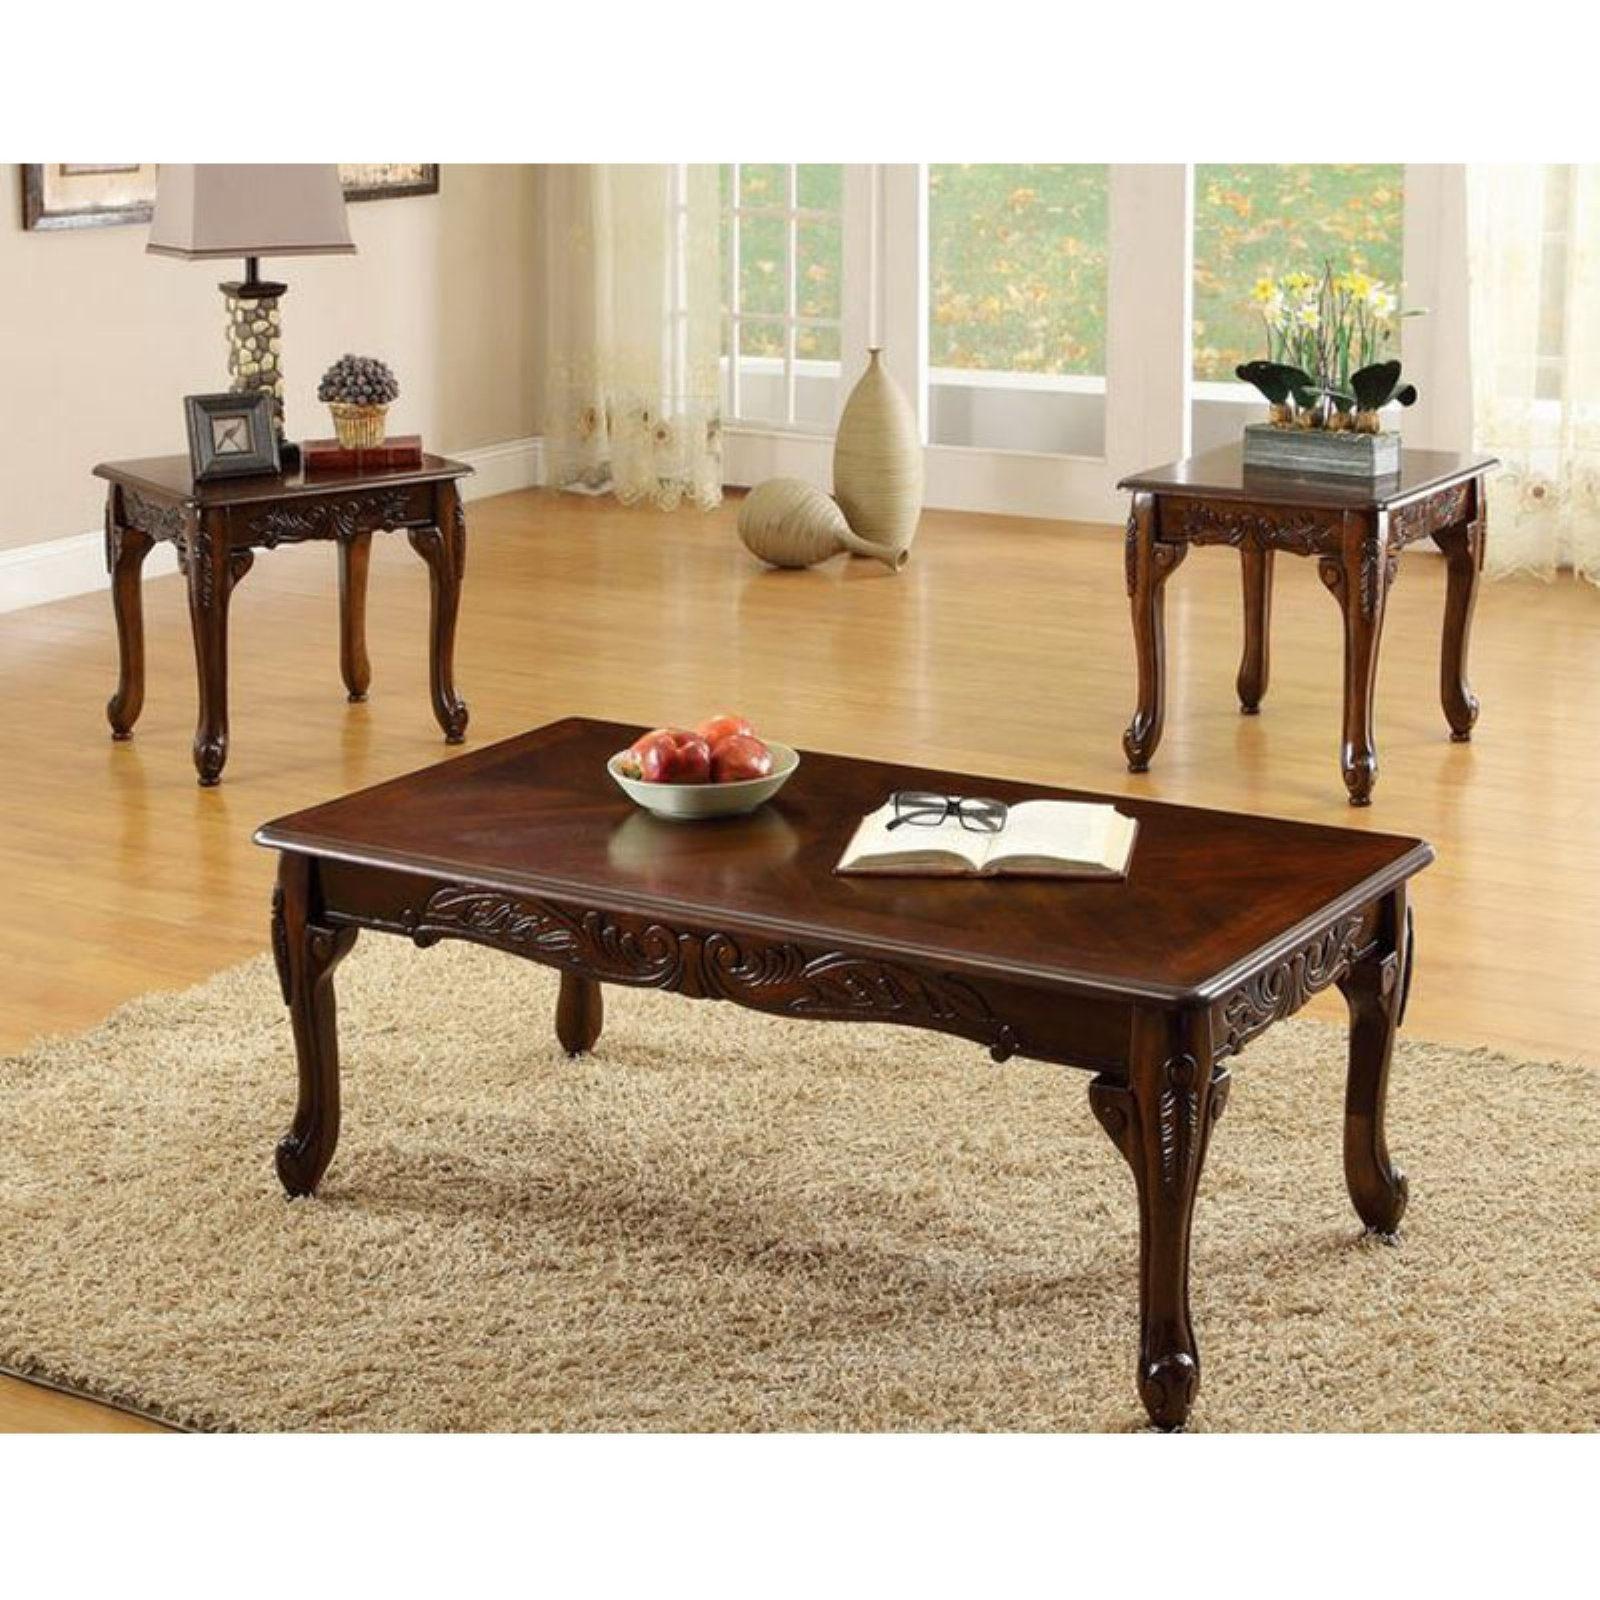 Merveilleux Fraser Old English Style Cherry Finish 3 Piece Coffee U0026 End Table Set